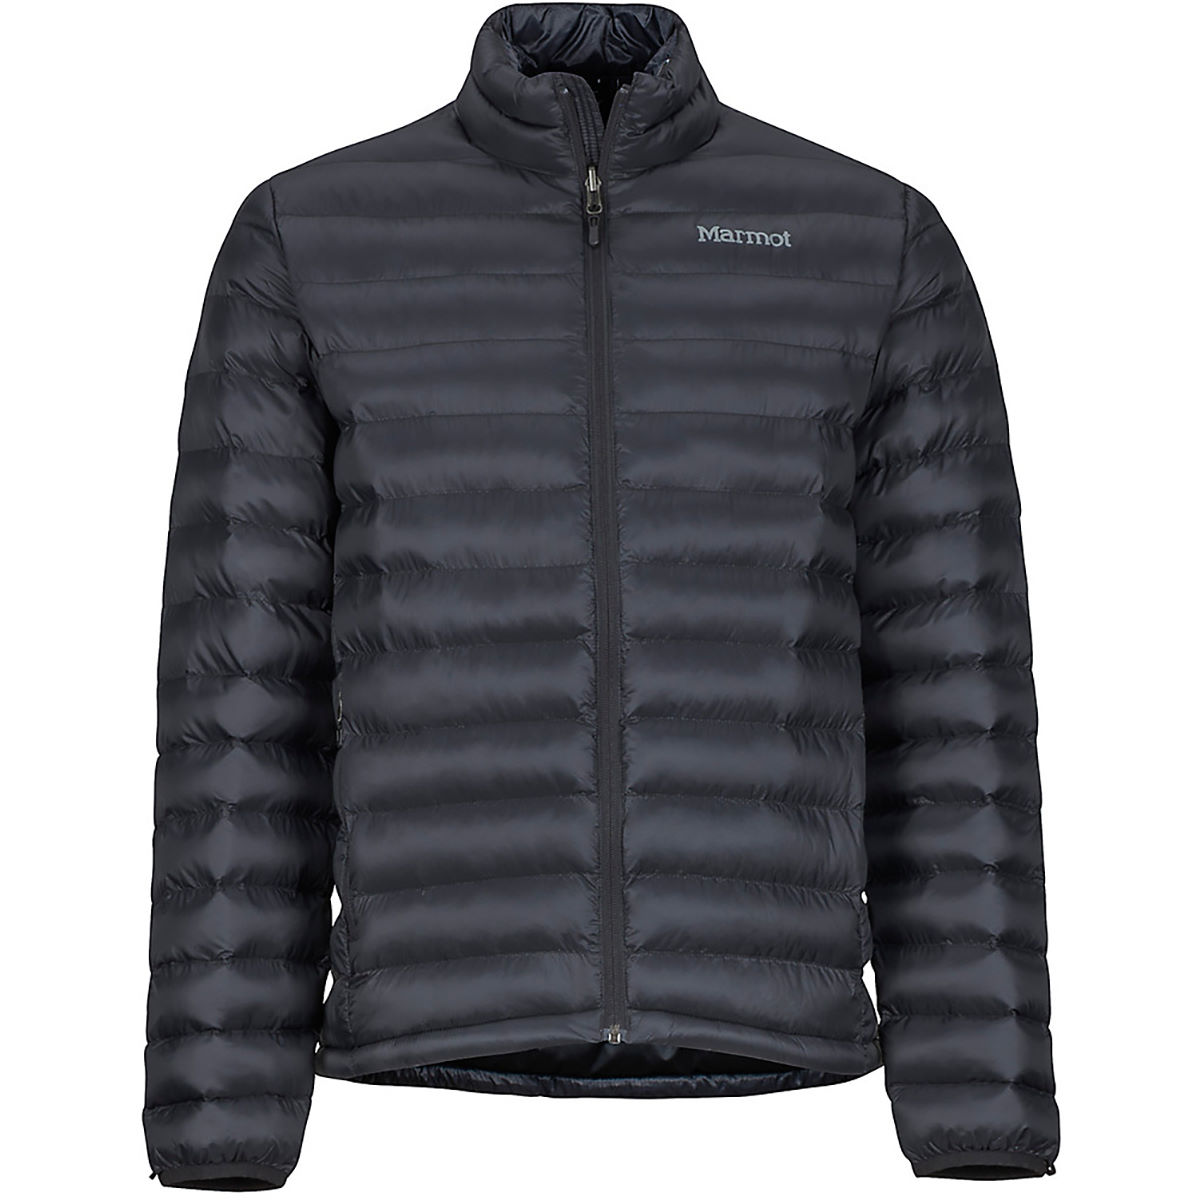 Marmot Marmot Solus Featherless Jacket   Jackets